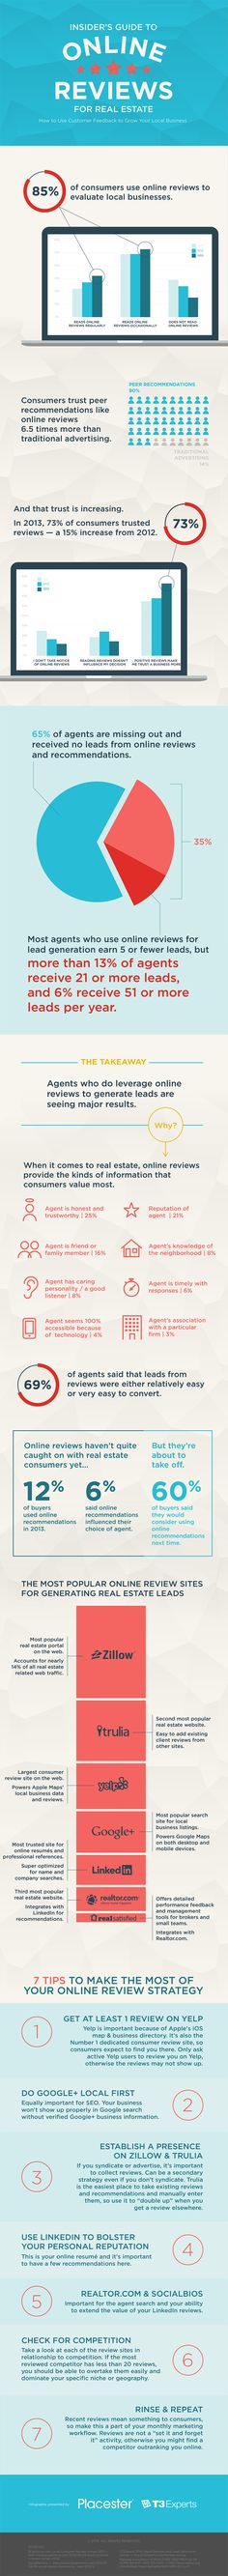 [Infographic] Insider's Guide to Online Reviews for Real Estate: How to Use Customer Feedback to Grow Your Local Business